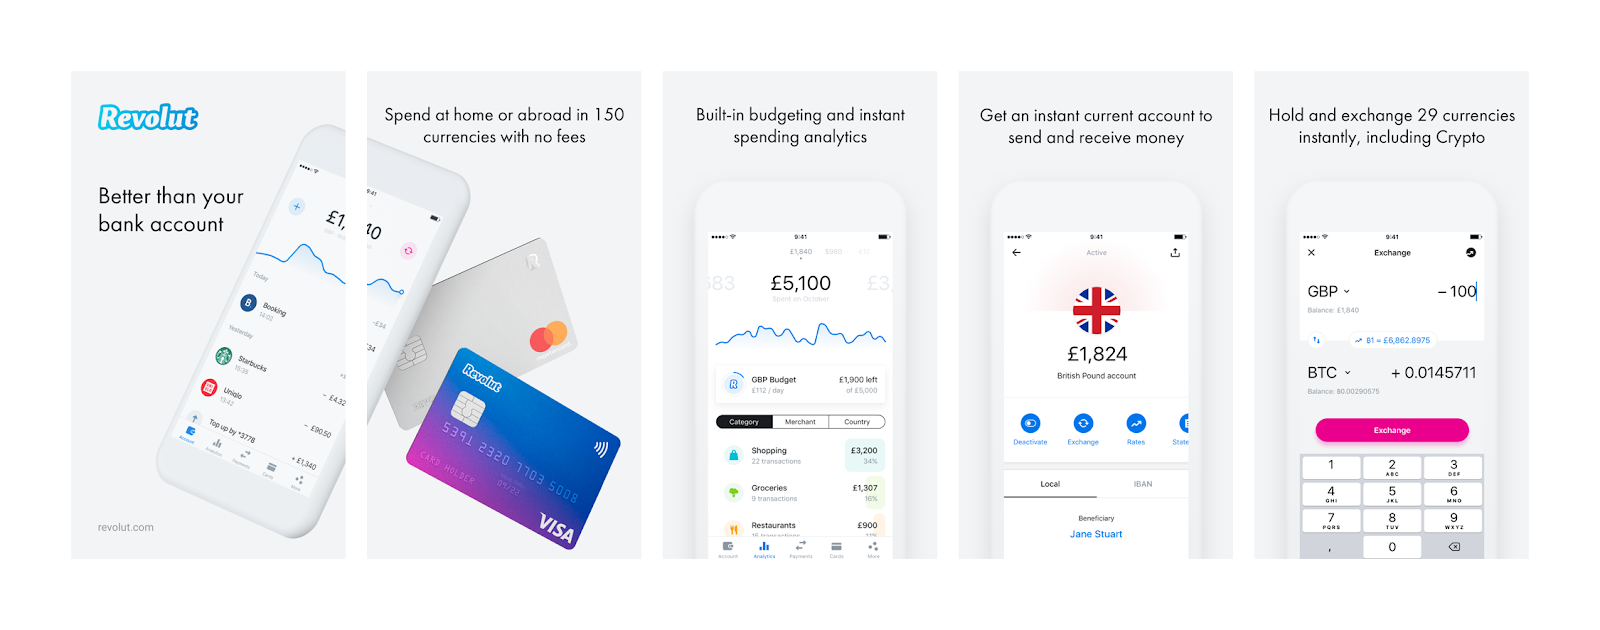 Application interface design examples: Revolut